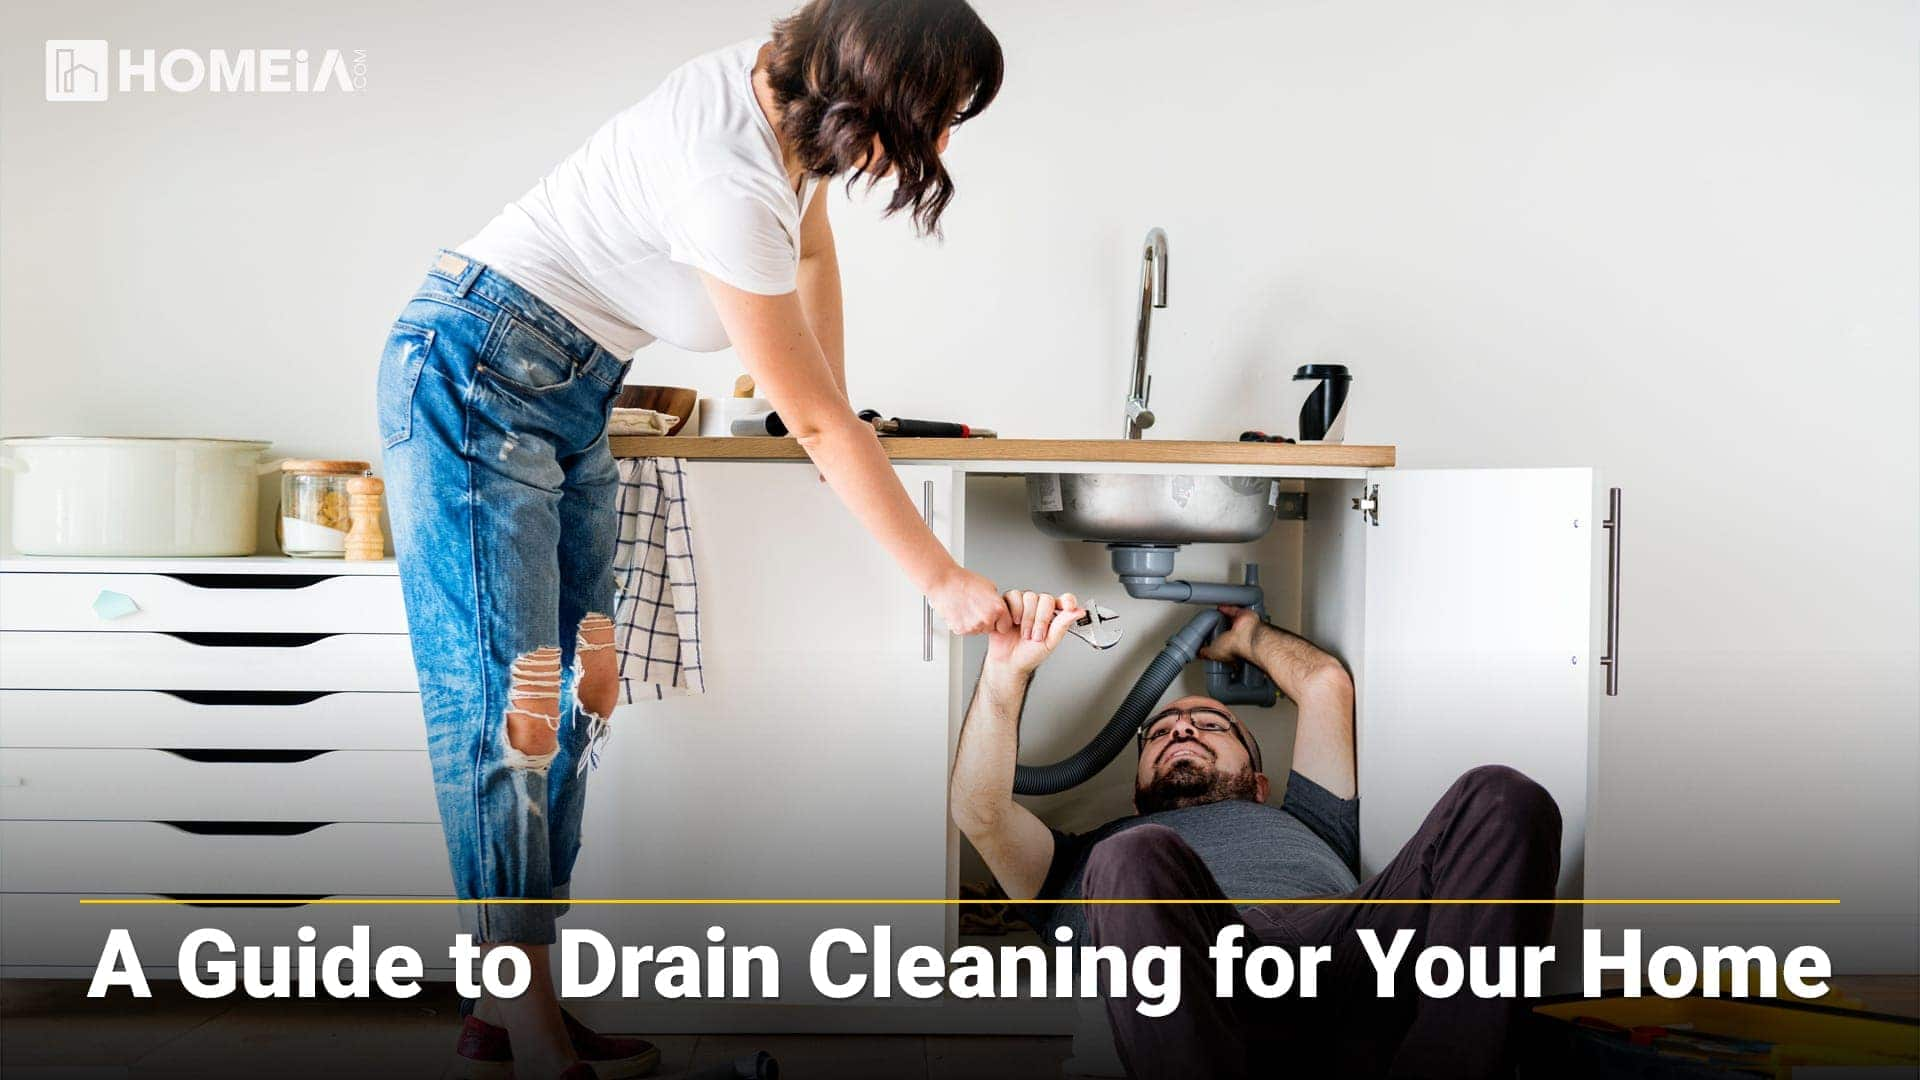 A Guide to Drain Cleaning for Your Home